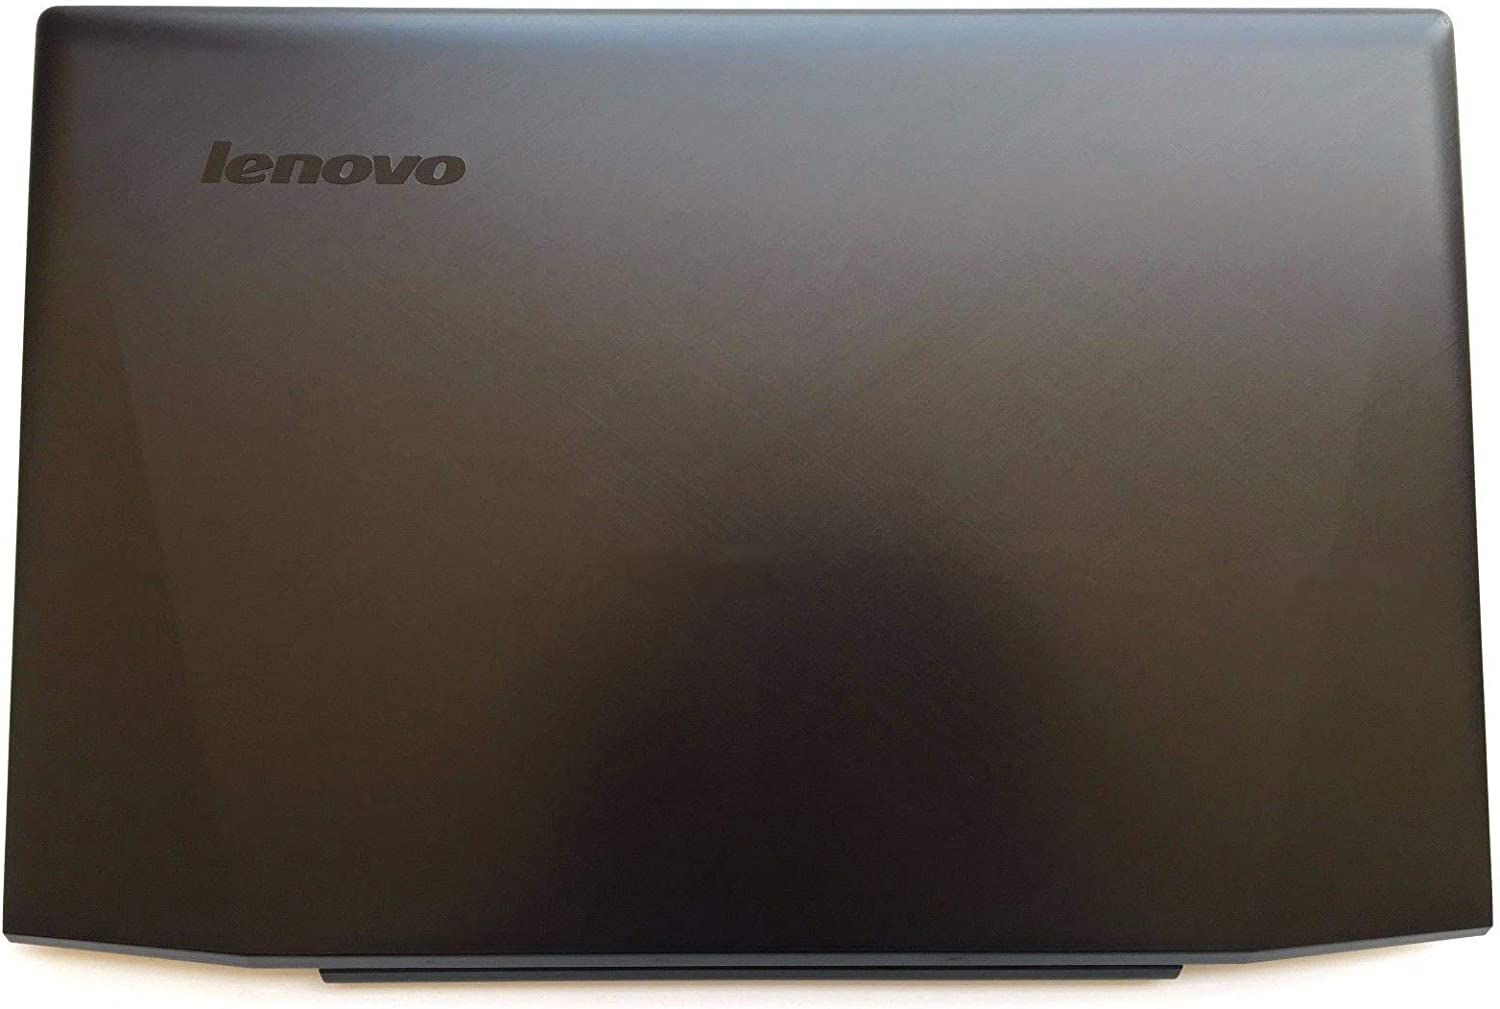 Original for Lenovo Y50 Y50-70 Laptop LCD Rear Lid Back Cover Top Case Shell Non Touch AM14R000400 Touch AM14R000300 (NO Touch AM14R000400)